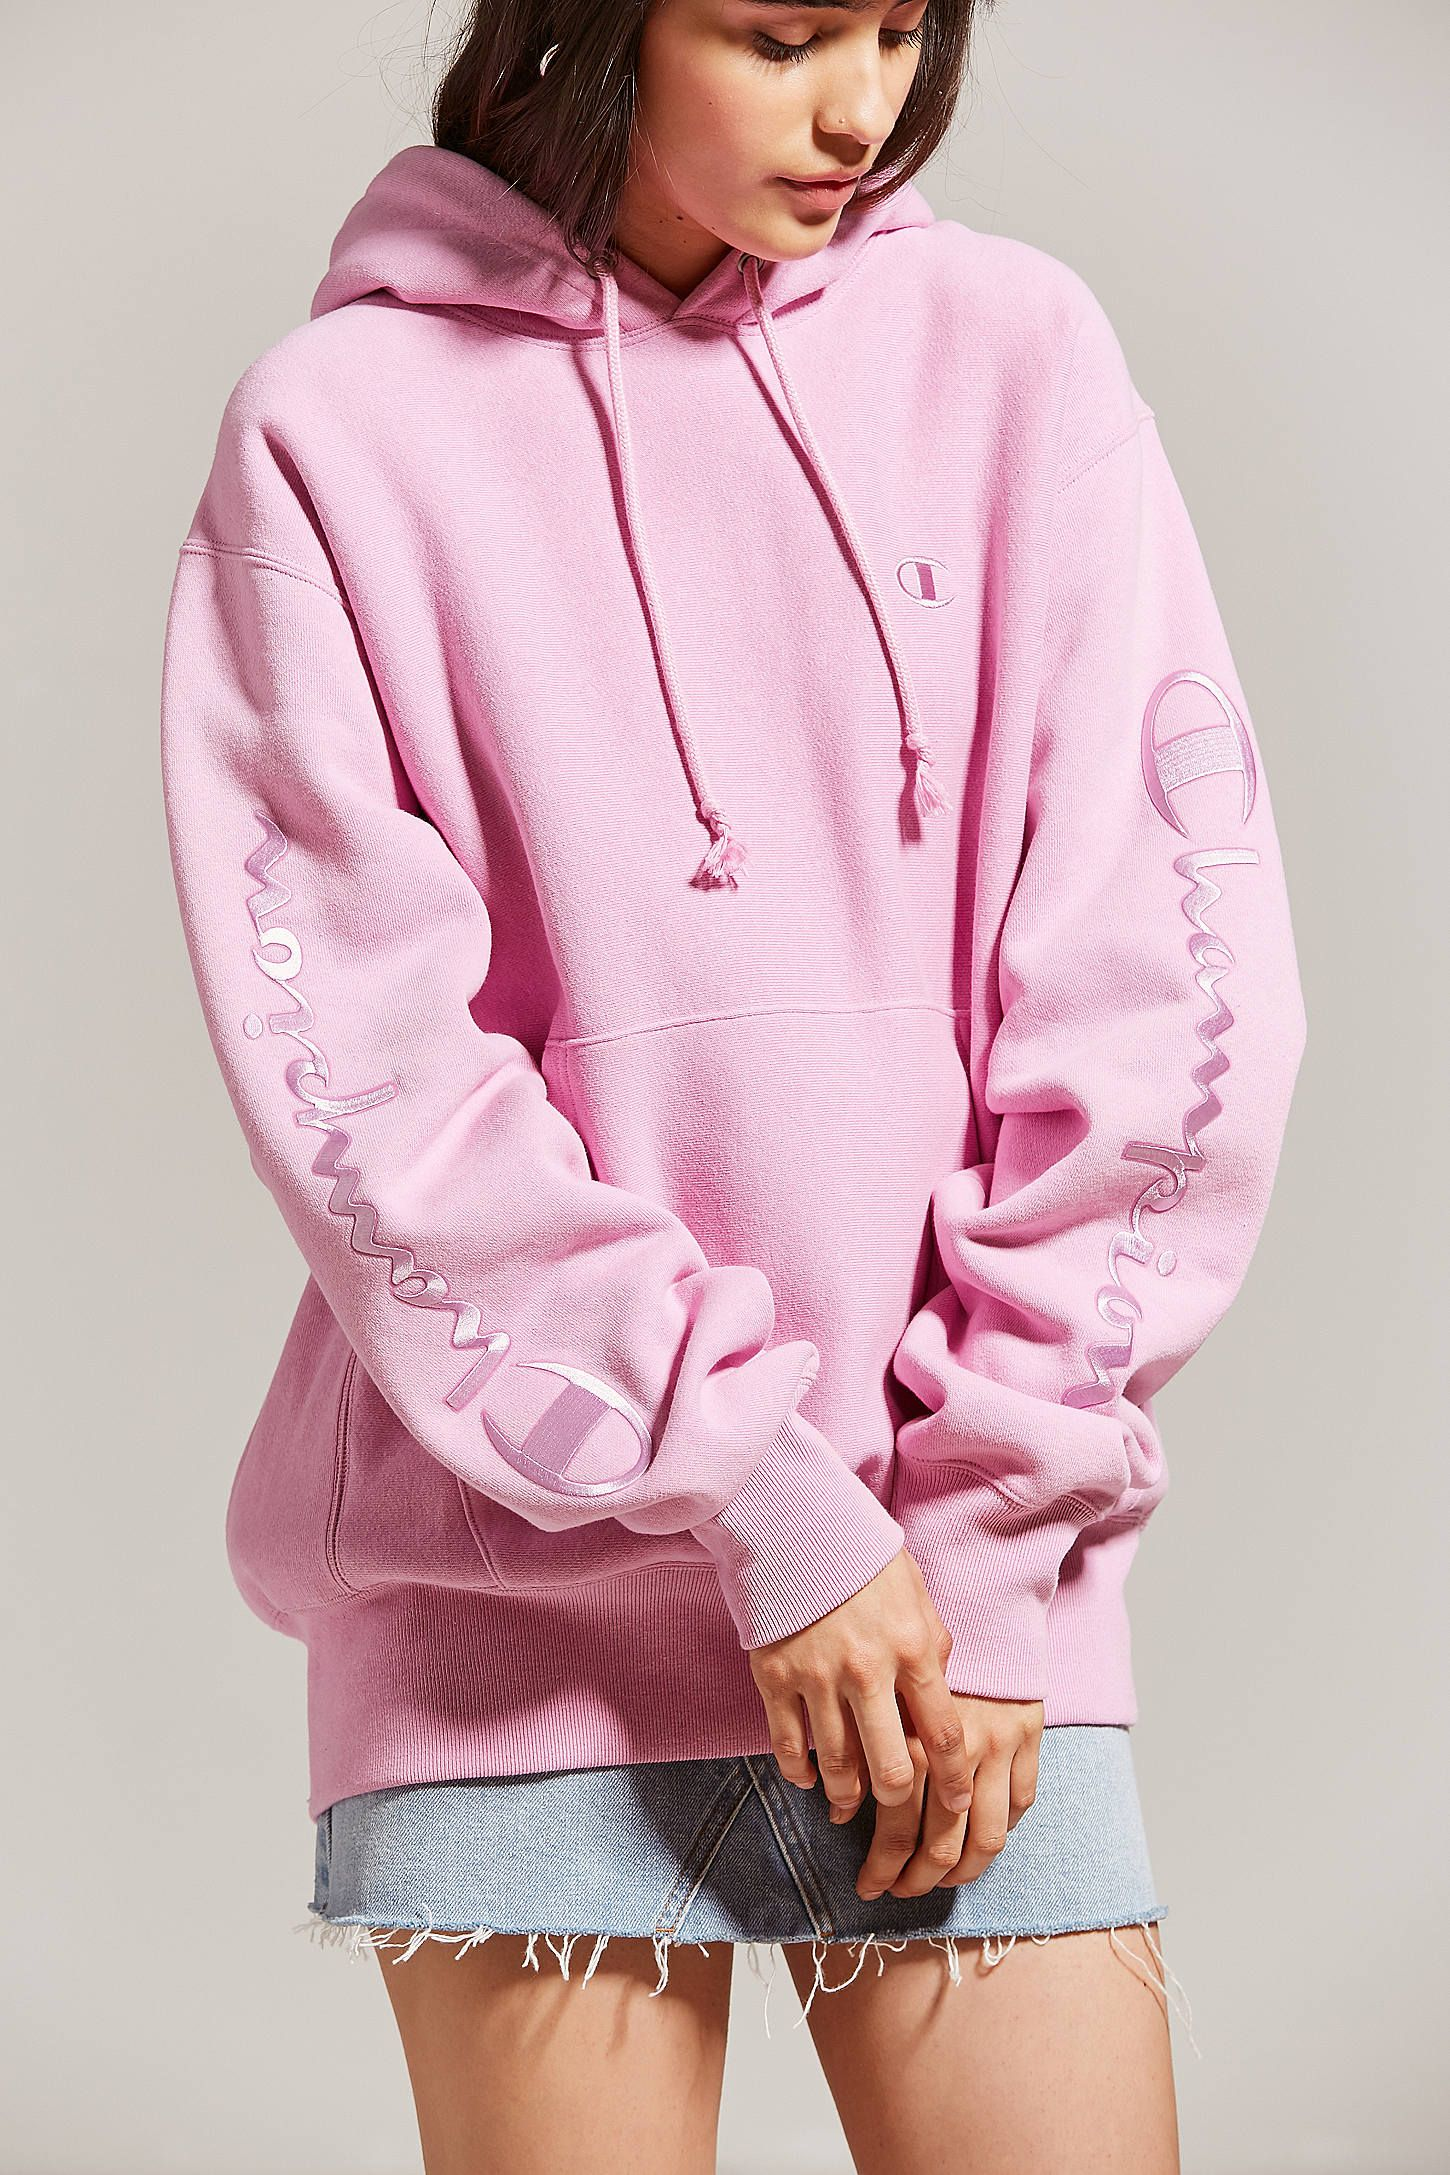 db6f950905b89 Shop Champion   UO Novelty Graphic Hoodie Sweatshirt at Urban Outfitters  today. We carry all the latest styles